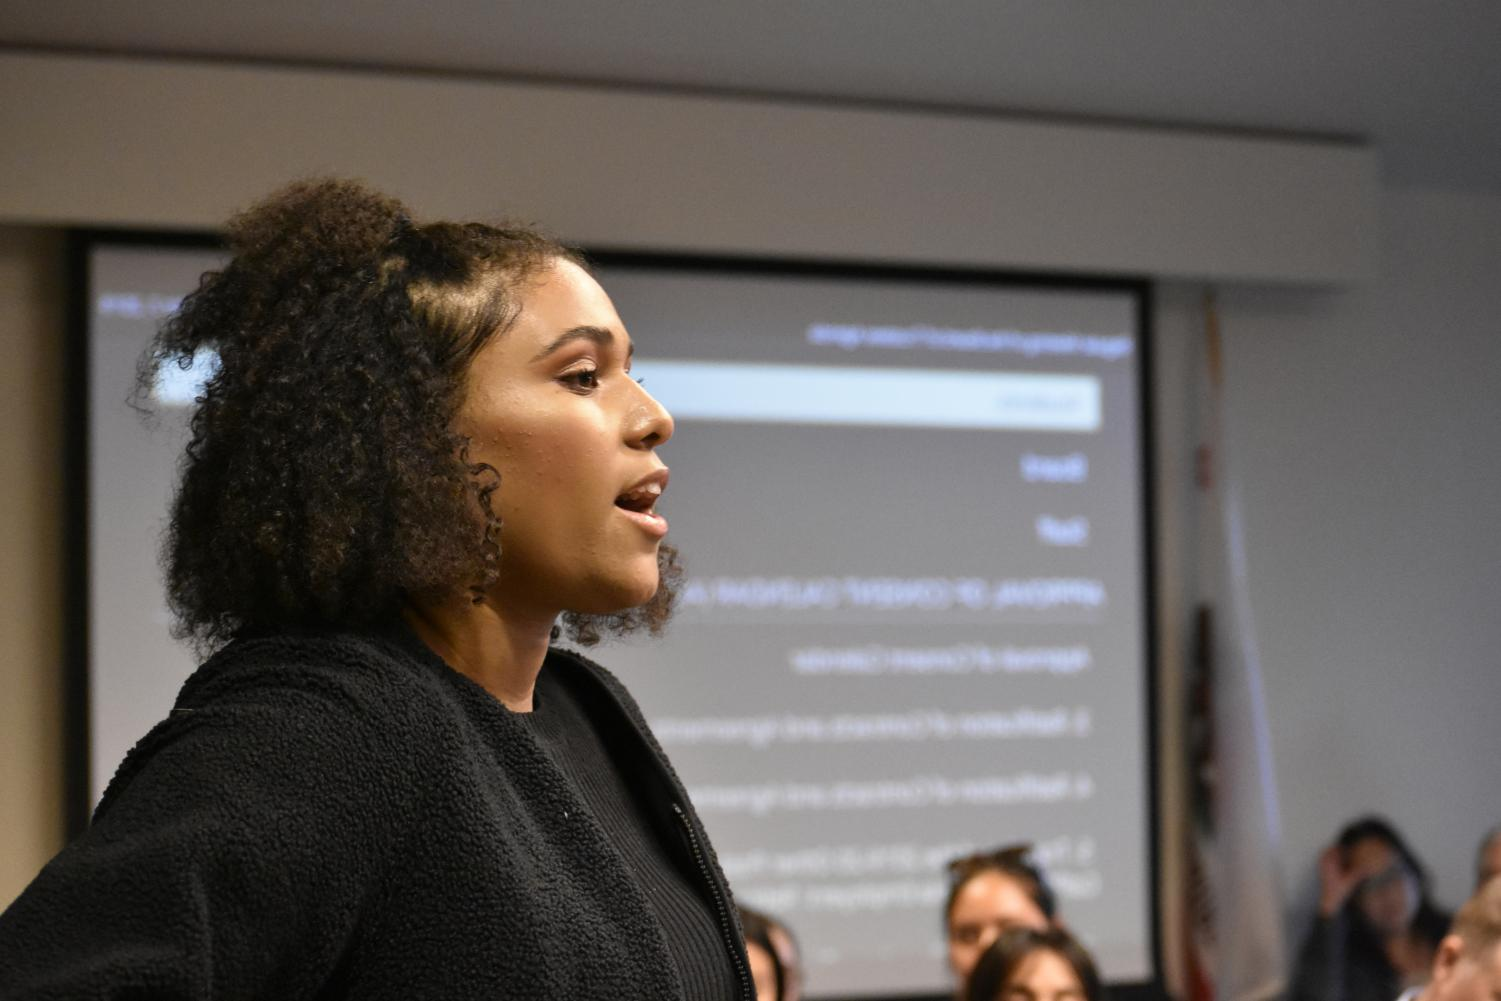 DASB Vice President Maya Burns spoke in favor of affordable student housing in the on-campus Flint Center at the Oct. 7 Foothill-De Anza Board of Trustees meeting.